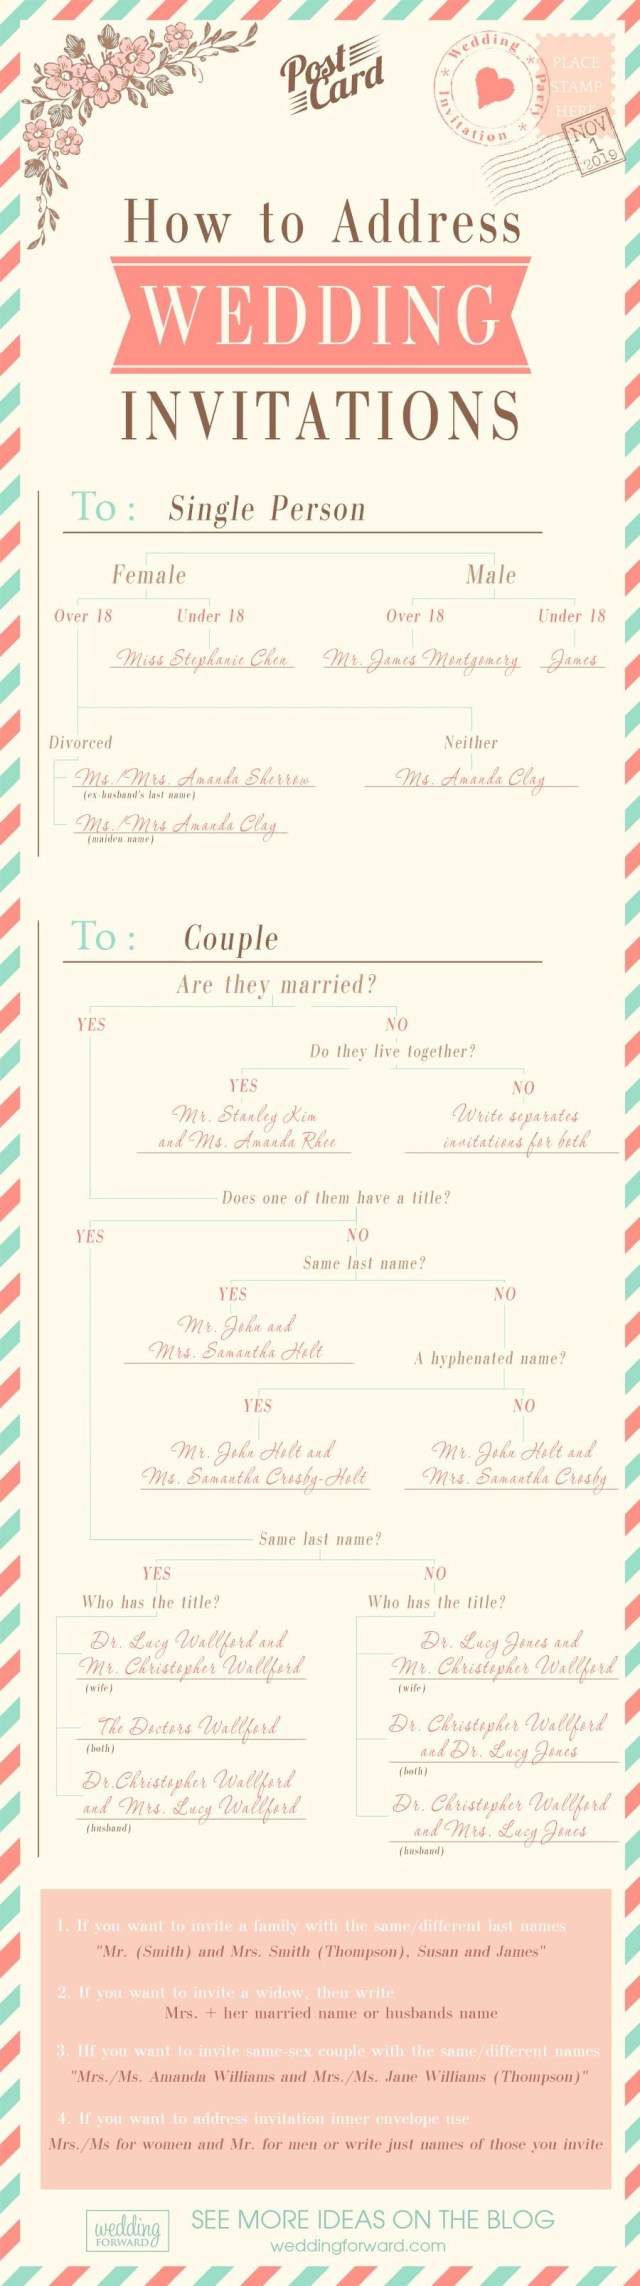 How To Address A Wedding Invitation 5 Main Rules How To Address Wedding Invitations Wedding Forward